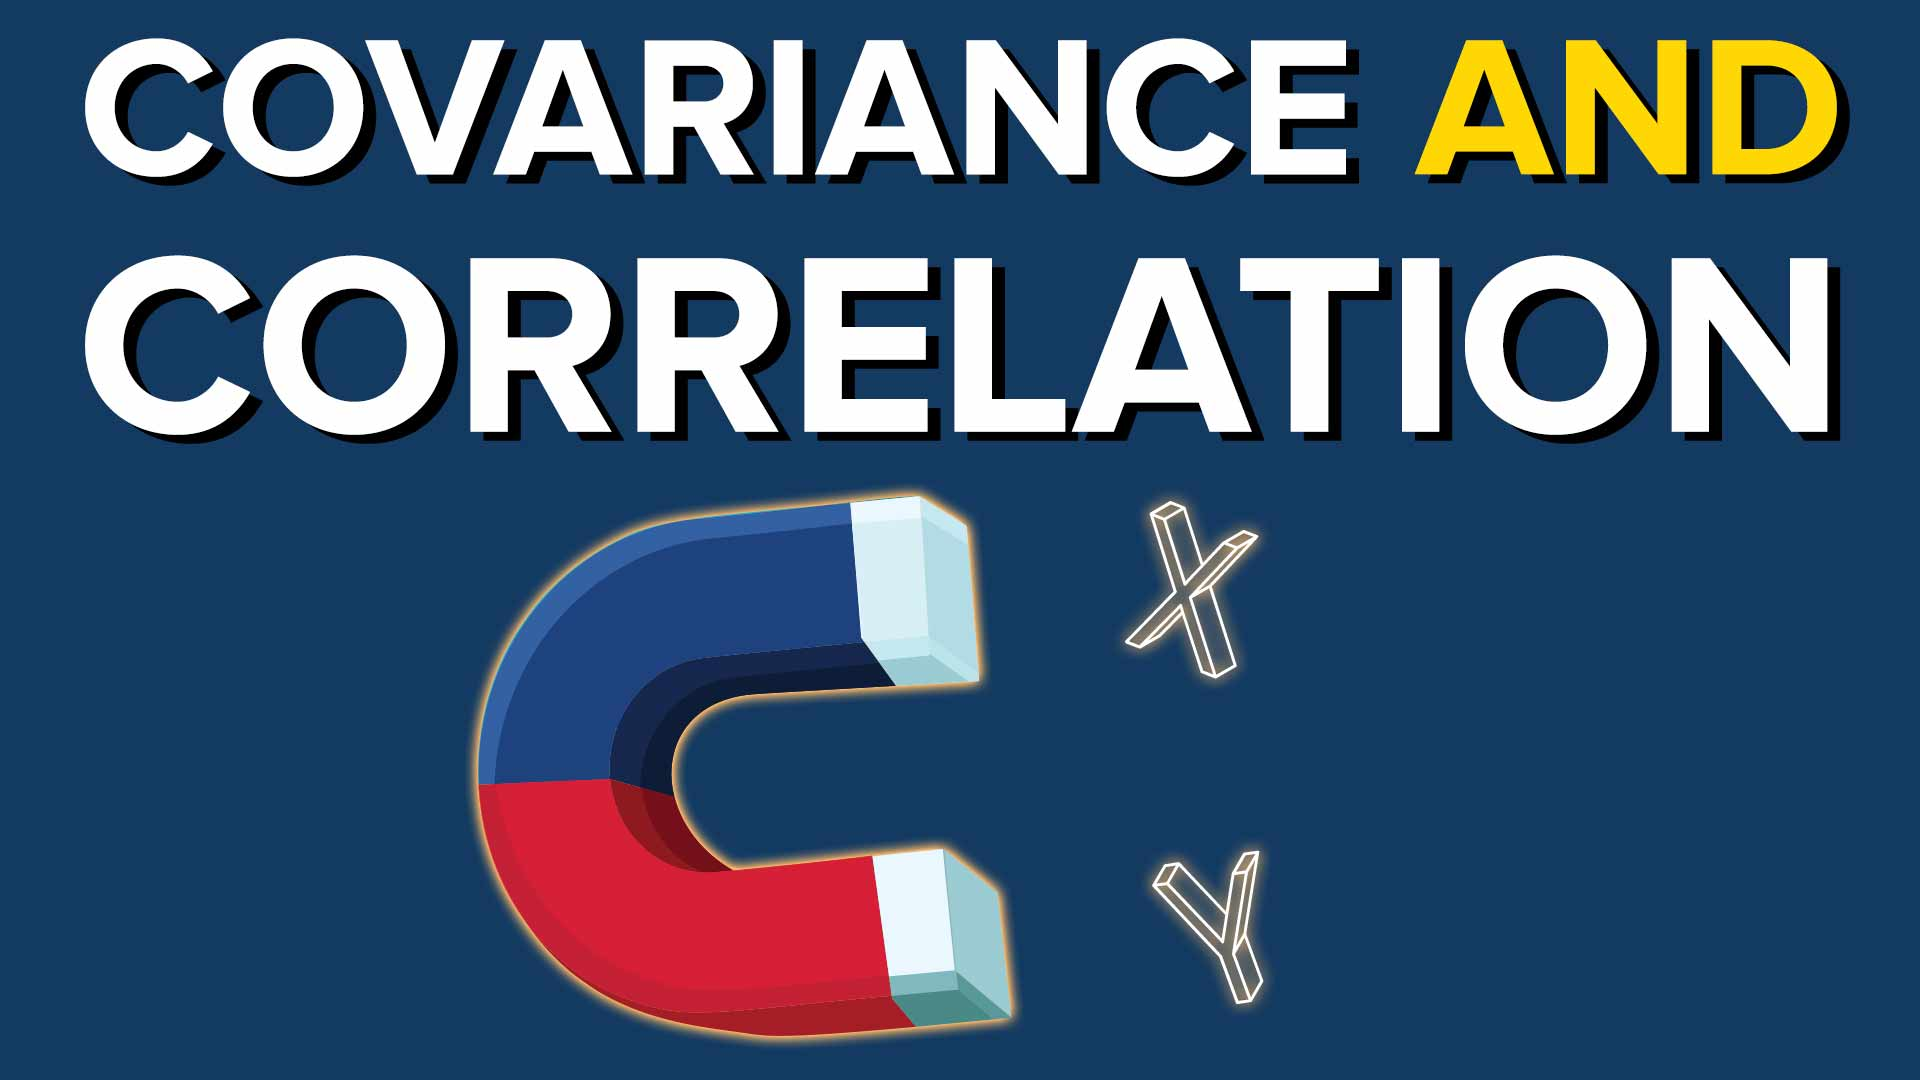 Co-variance and correlation